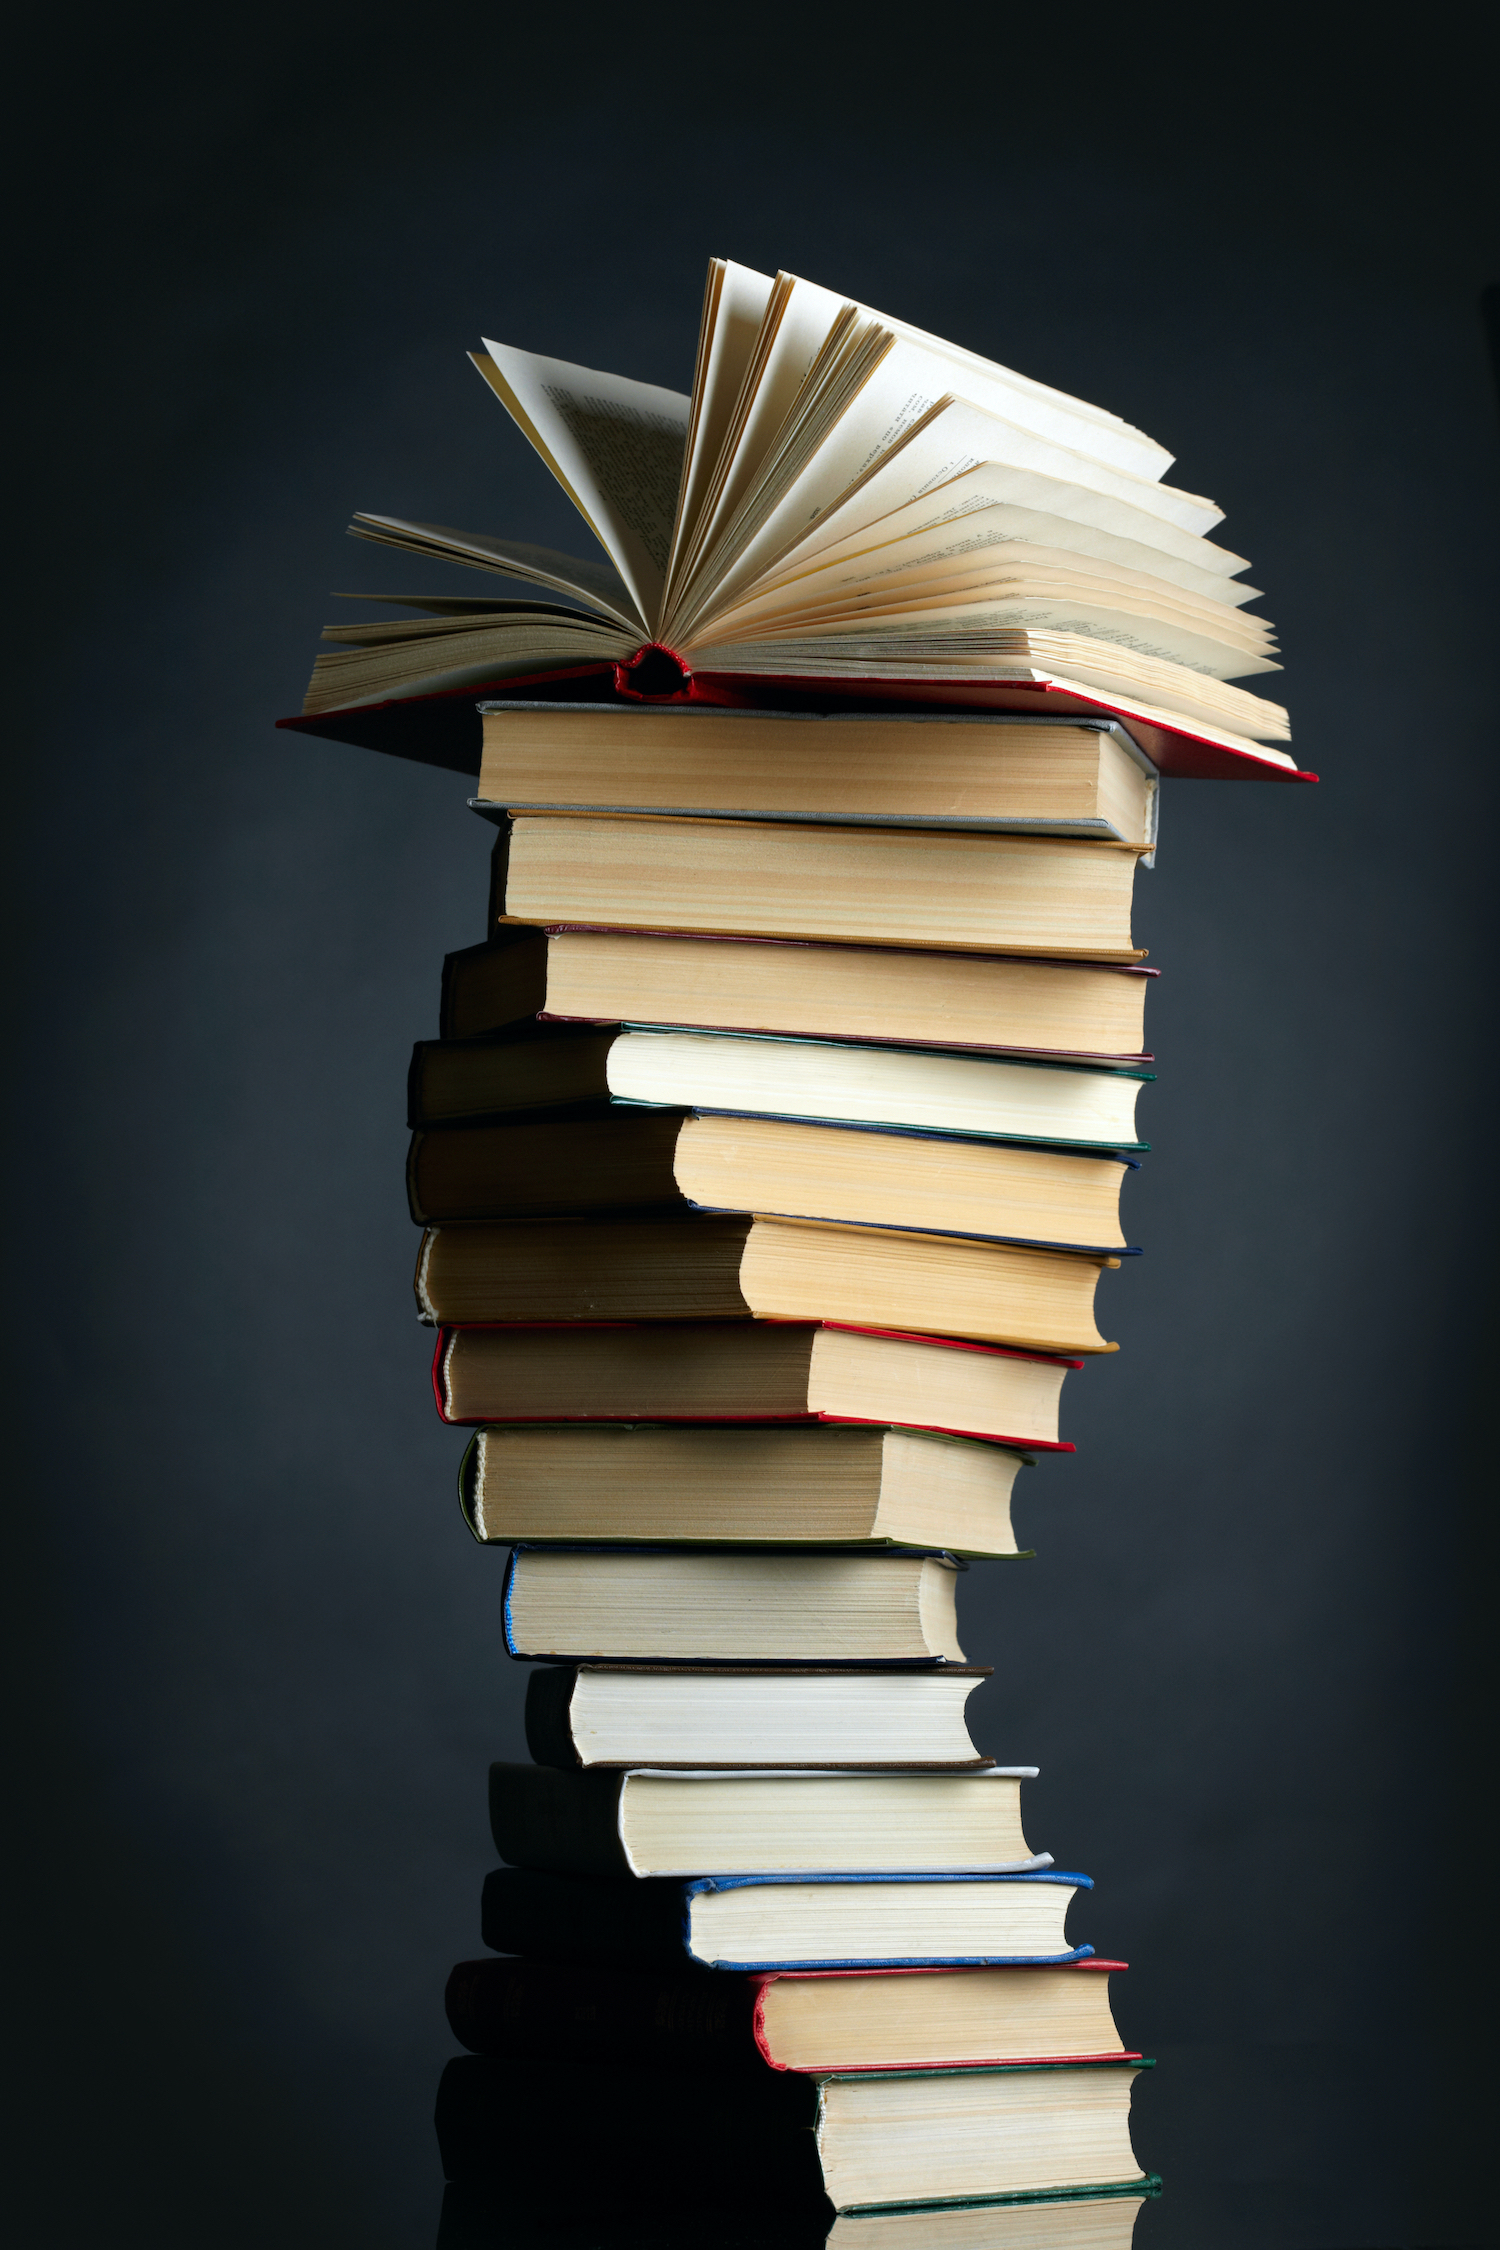 Picture - pile of books in twisted layout